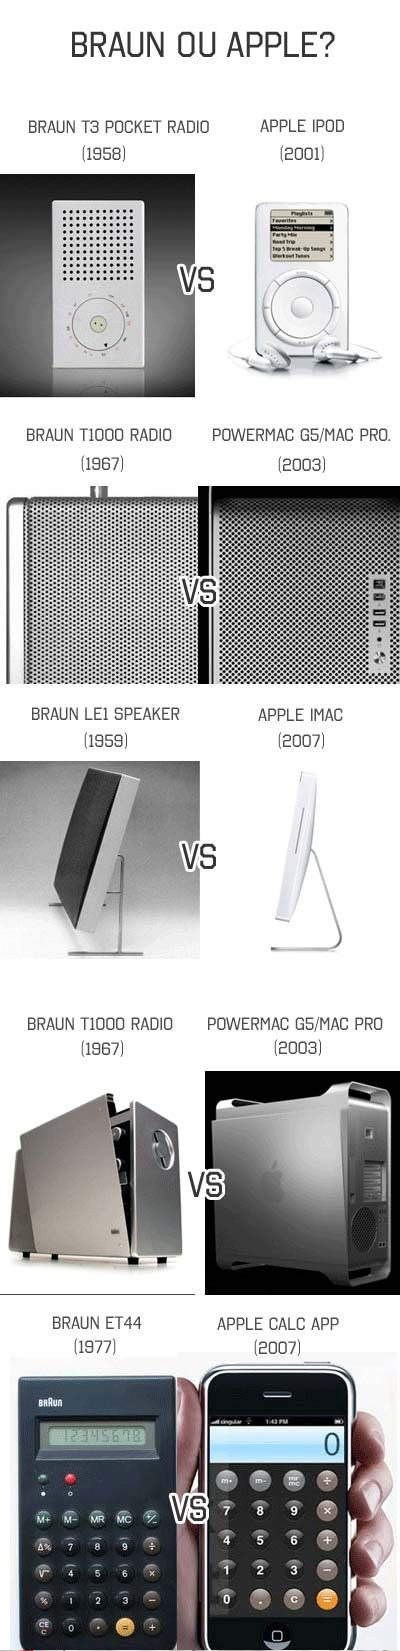 braun ou apple